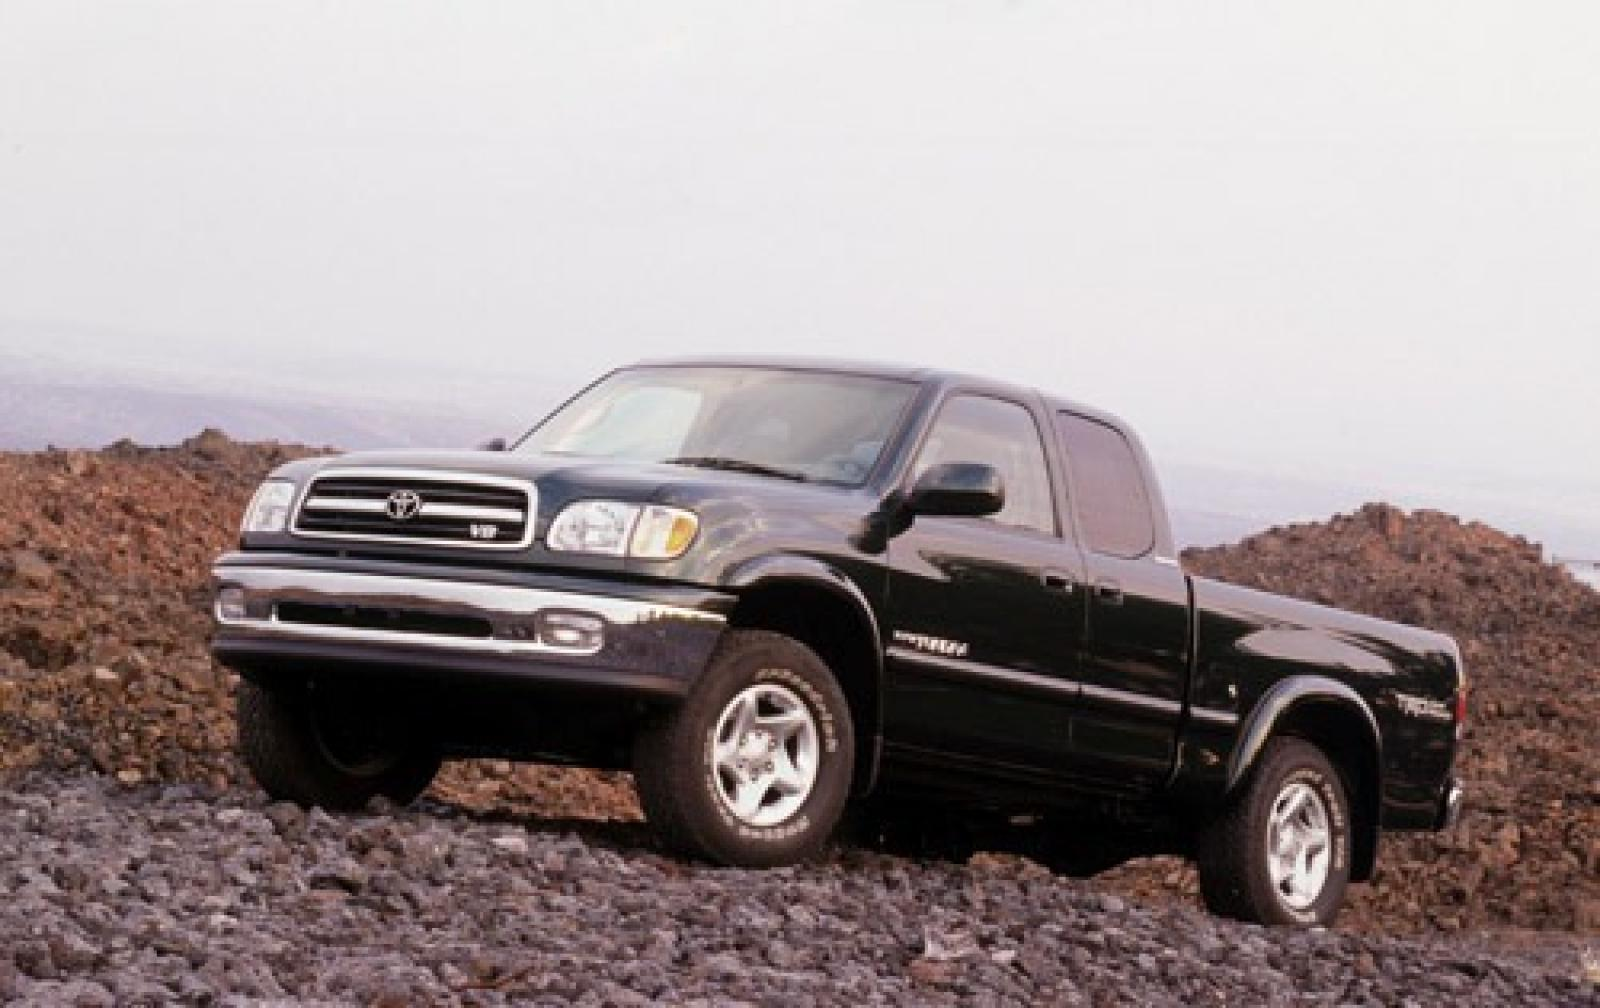 2003 toyota tundra information and photos zombiedrive. Black Bedroom Furniture Sets. Home Design Ideas